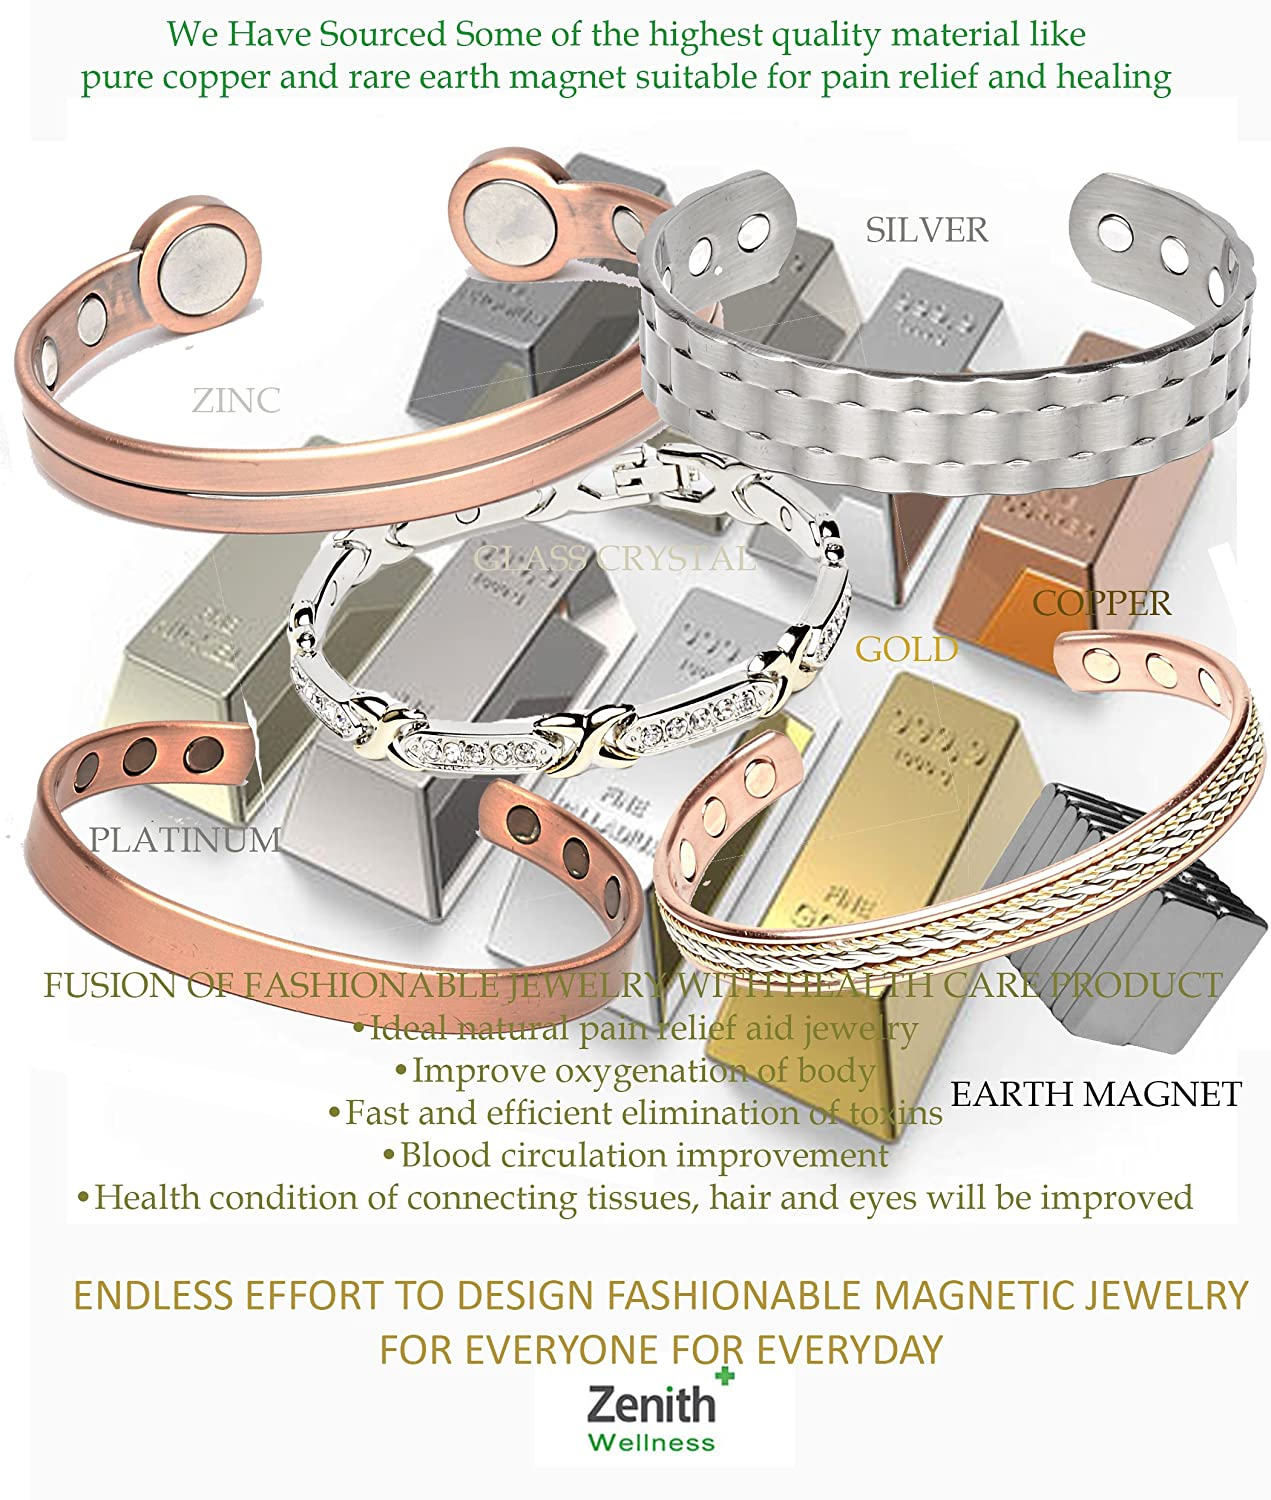 Forum on this topic: Do Magnets Offer Pain Relief, do-magnets-offer-pain-relief/